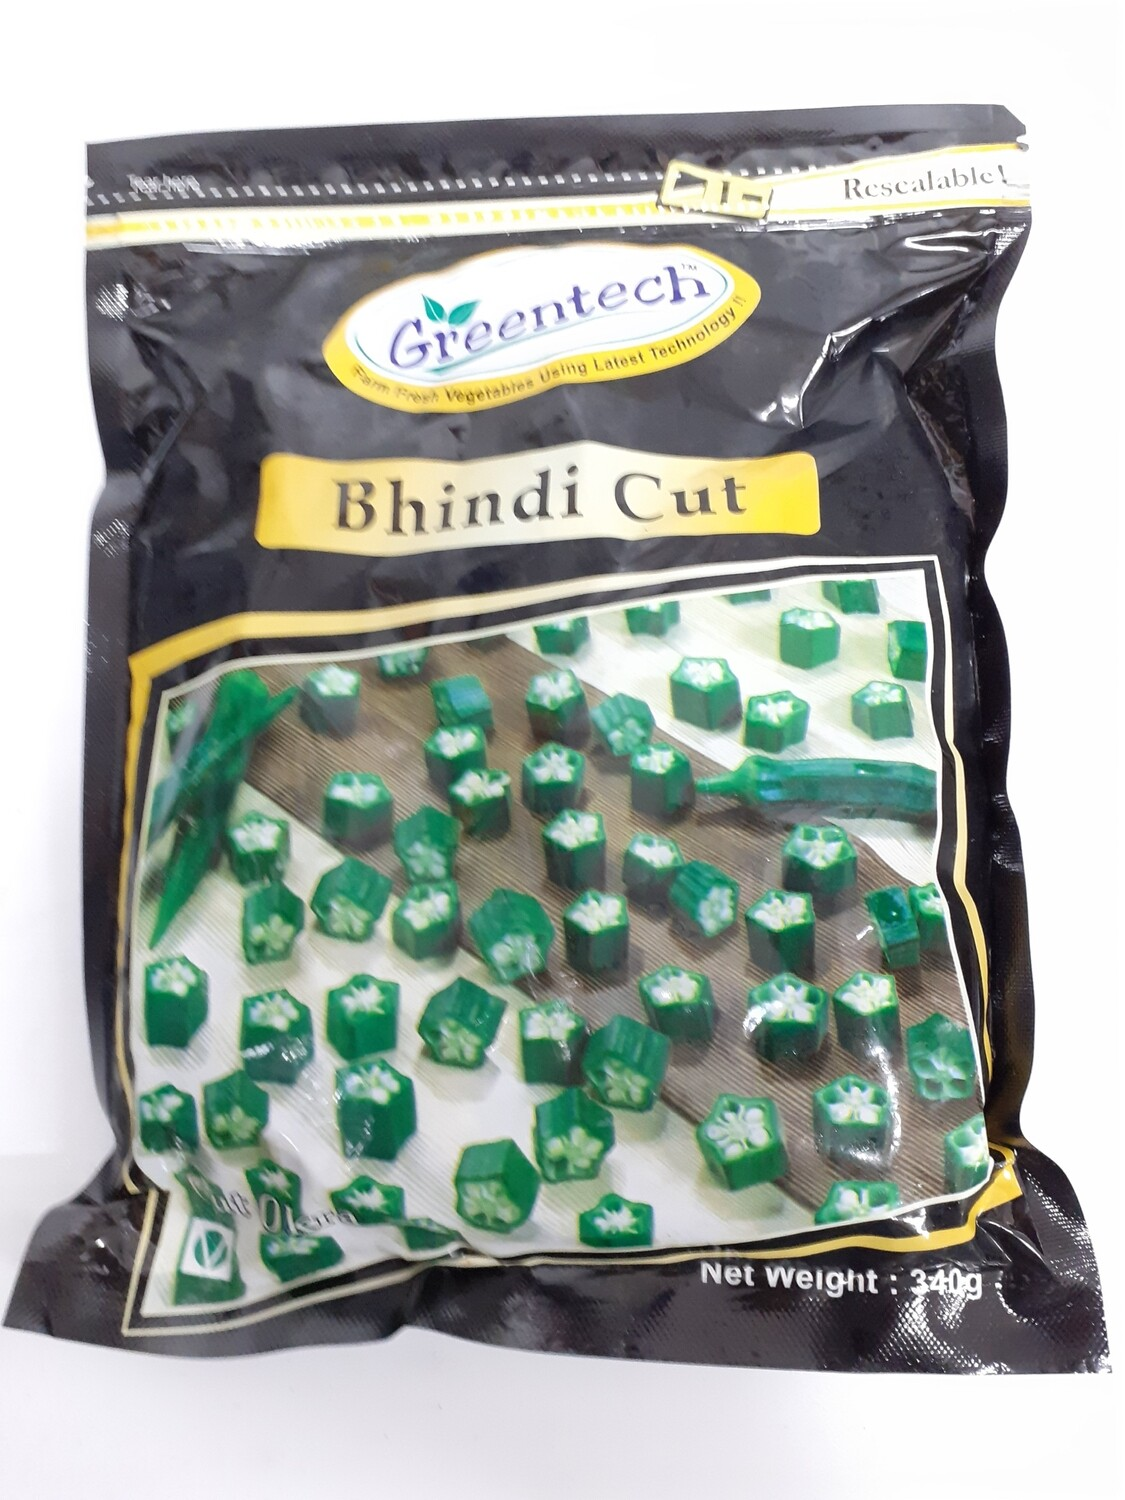 Bhindi Cut GREENTECH 340 g